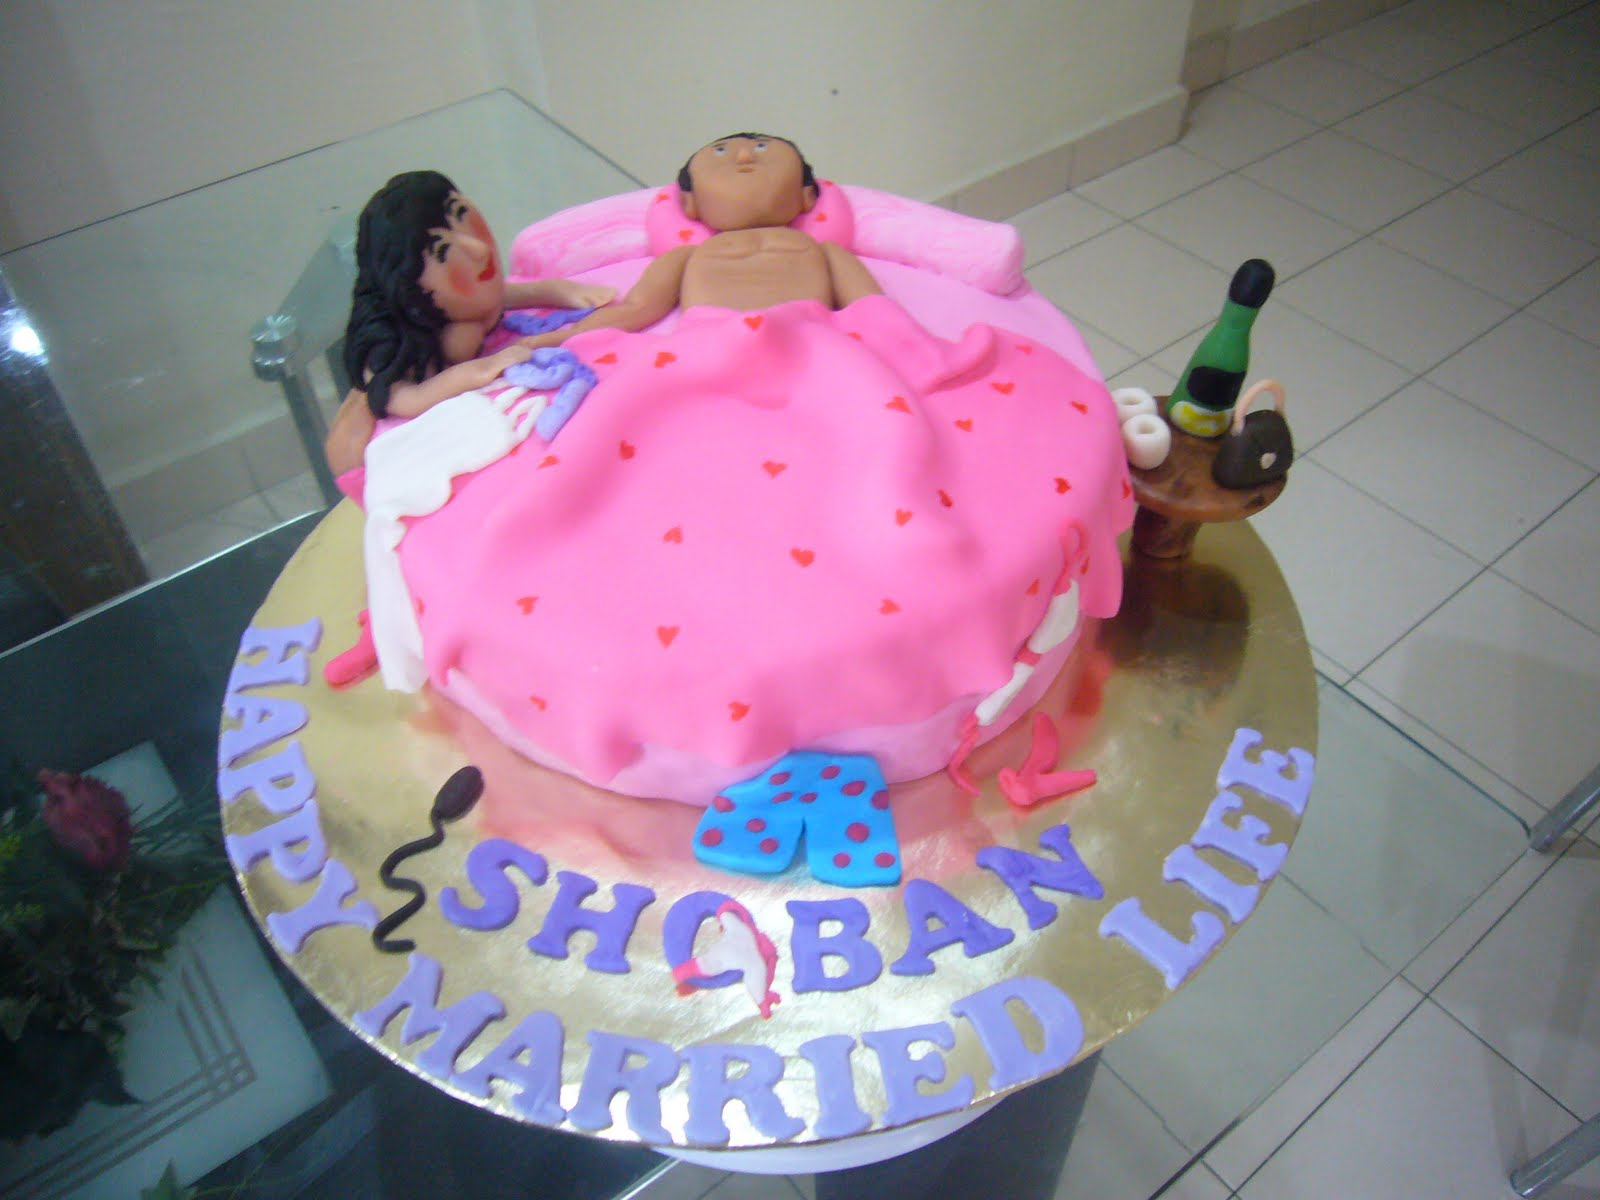 Images Of Naughty Birthday Cake : SIMPLY DELICIOUS CAKES: NAUGHTY CAKE - SEDUCTION